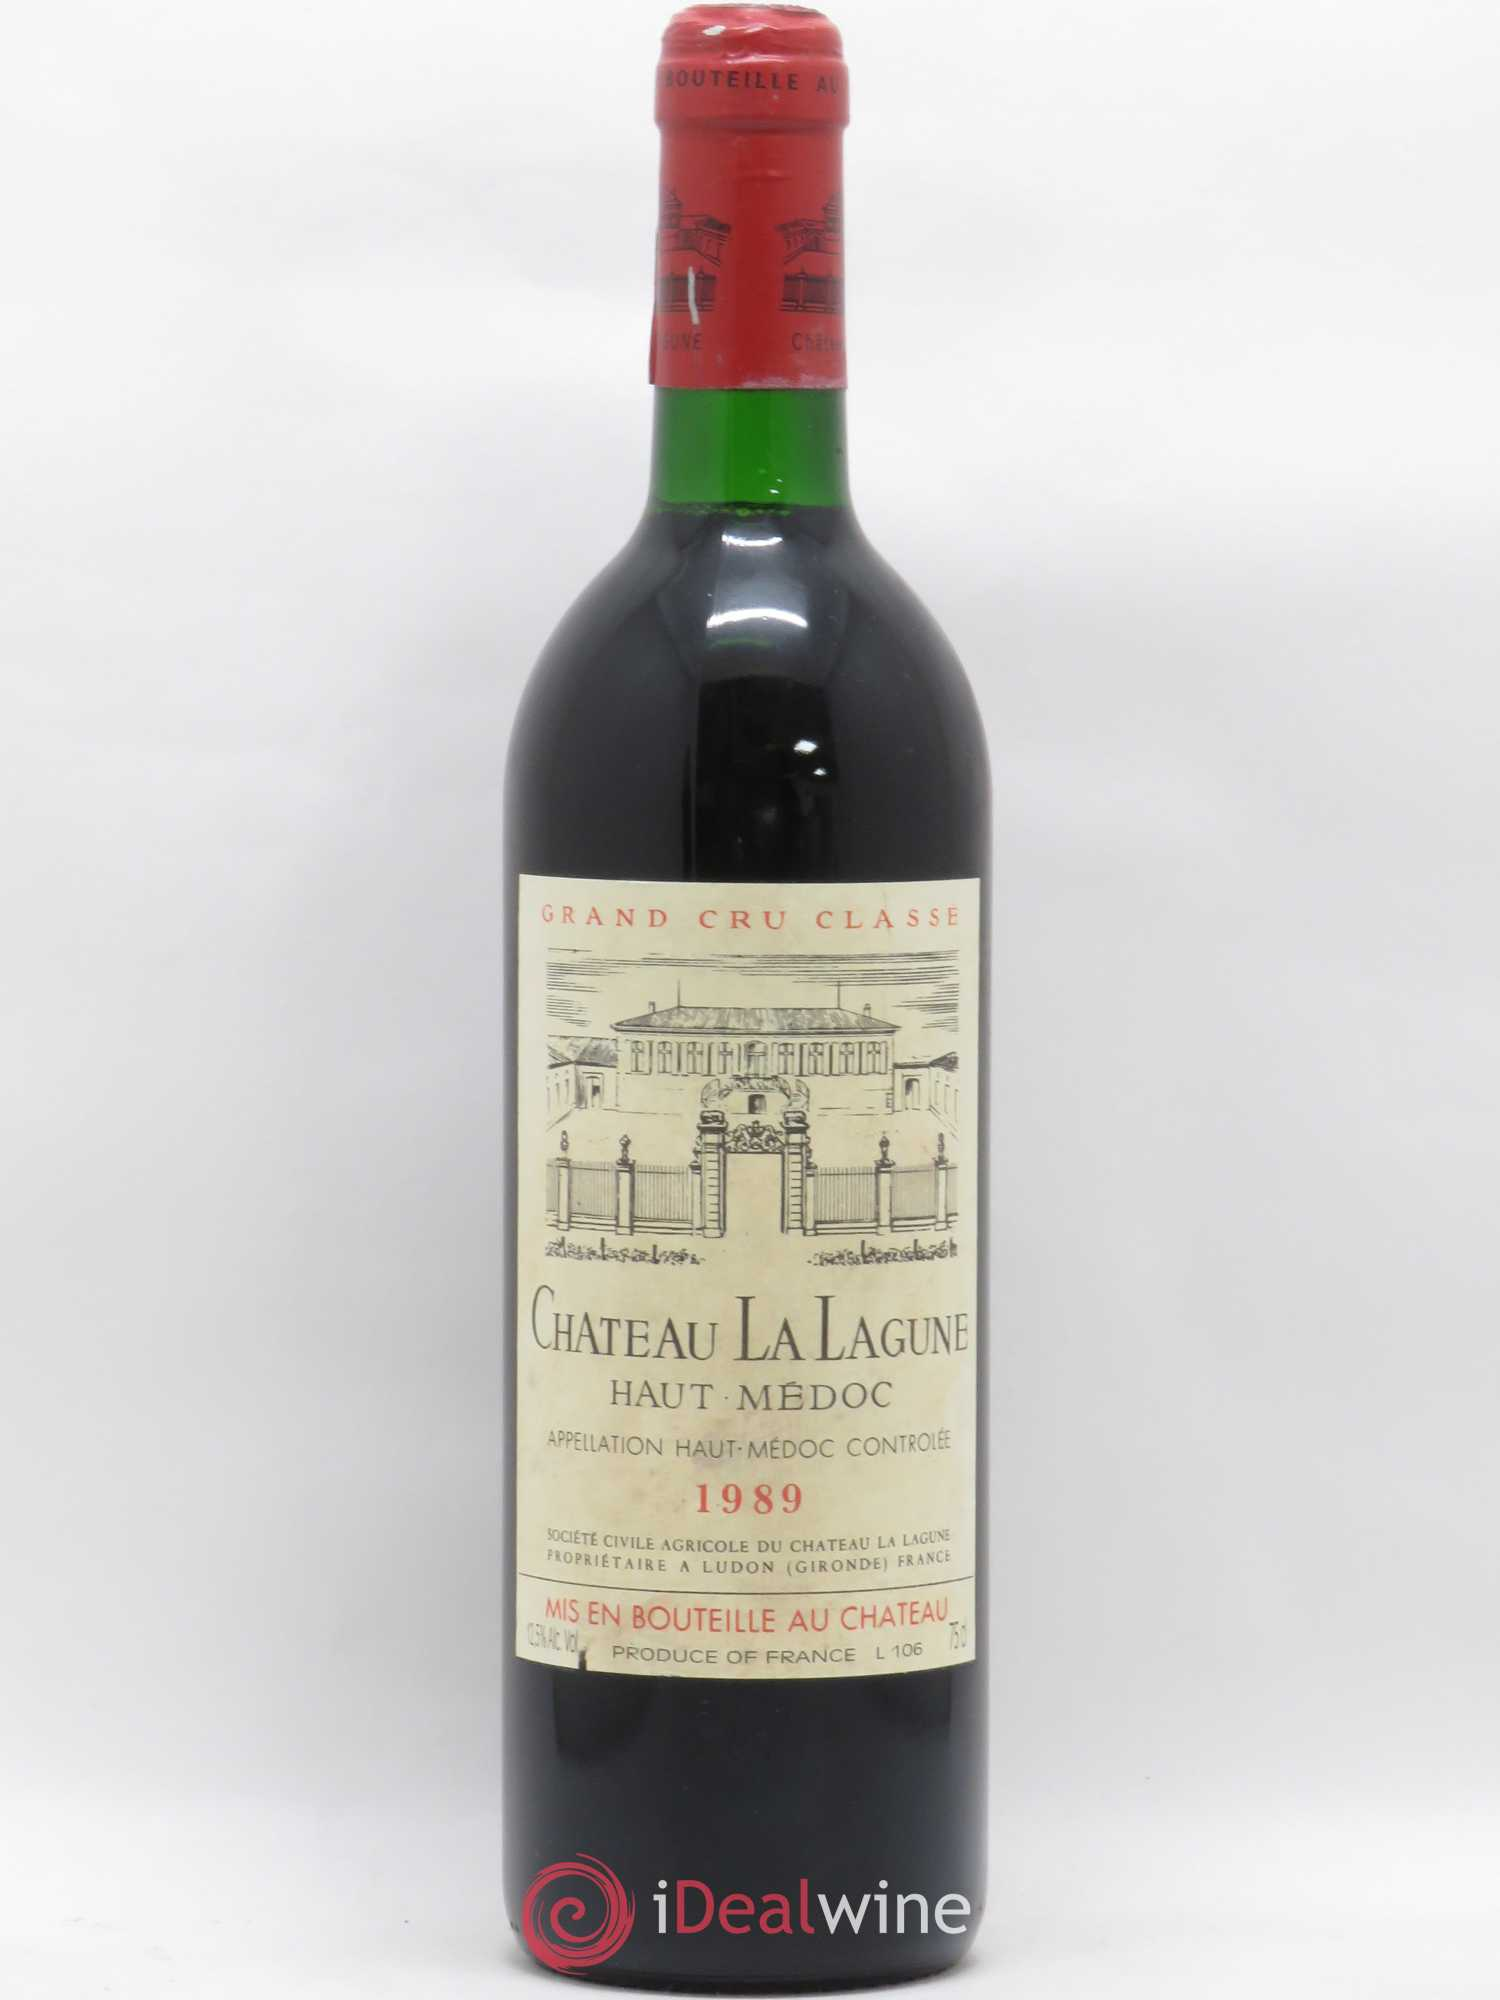 Château La Lagune 3ème Grand Cru Classé  1989 - Lot of 1 Bottle